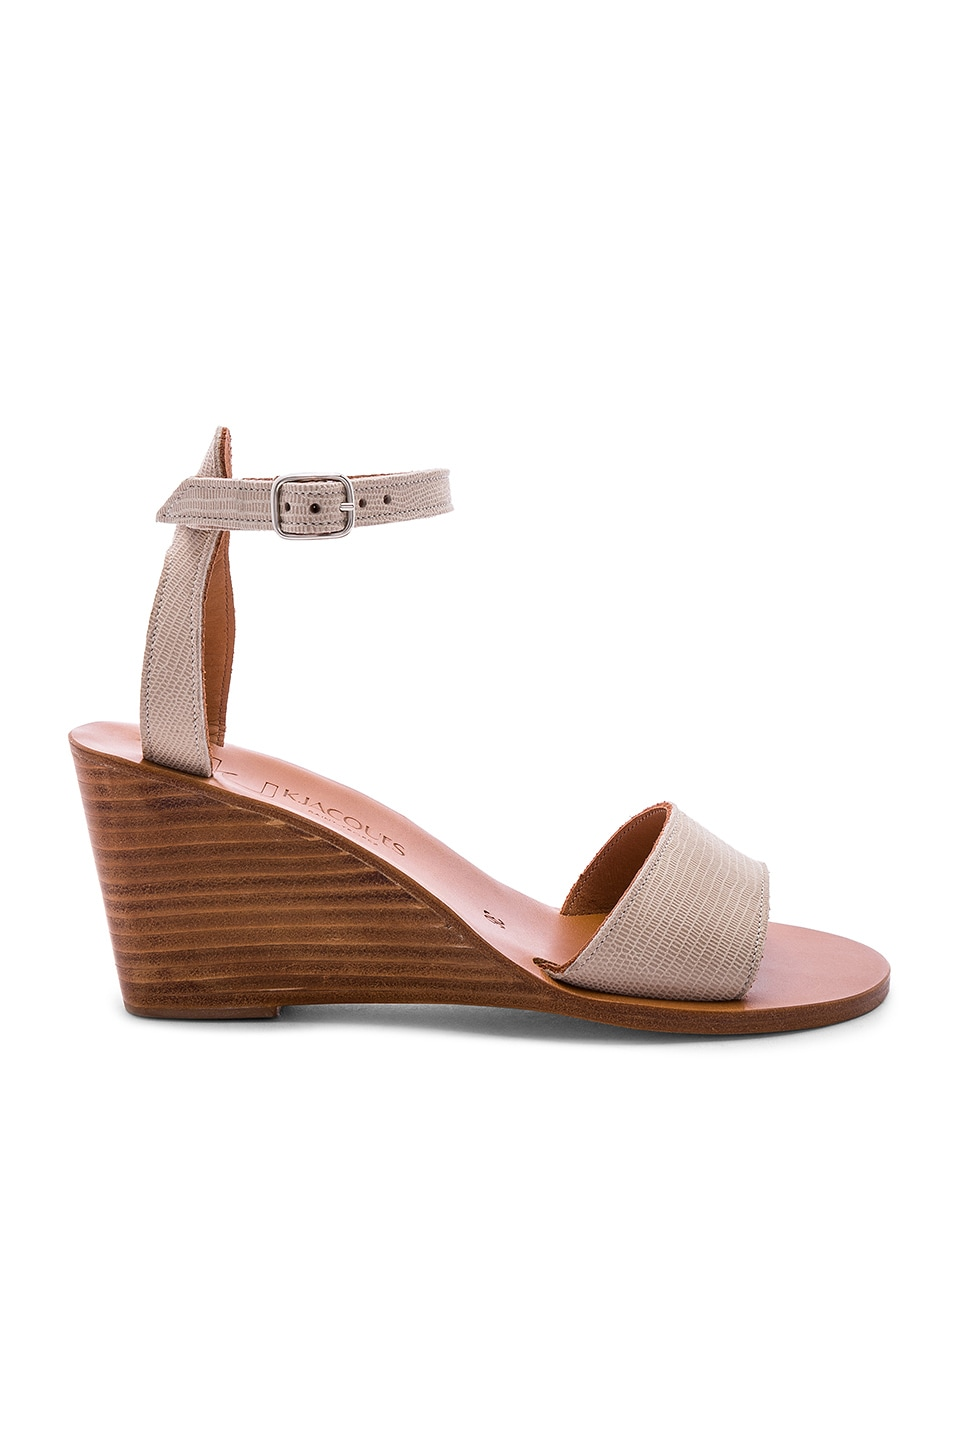 K Jacques Sardaigne Wedge in Tejus Sable